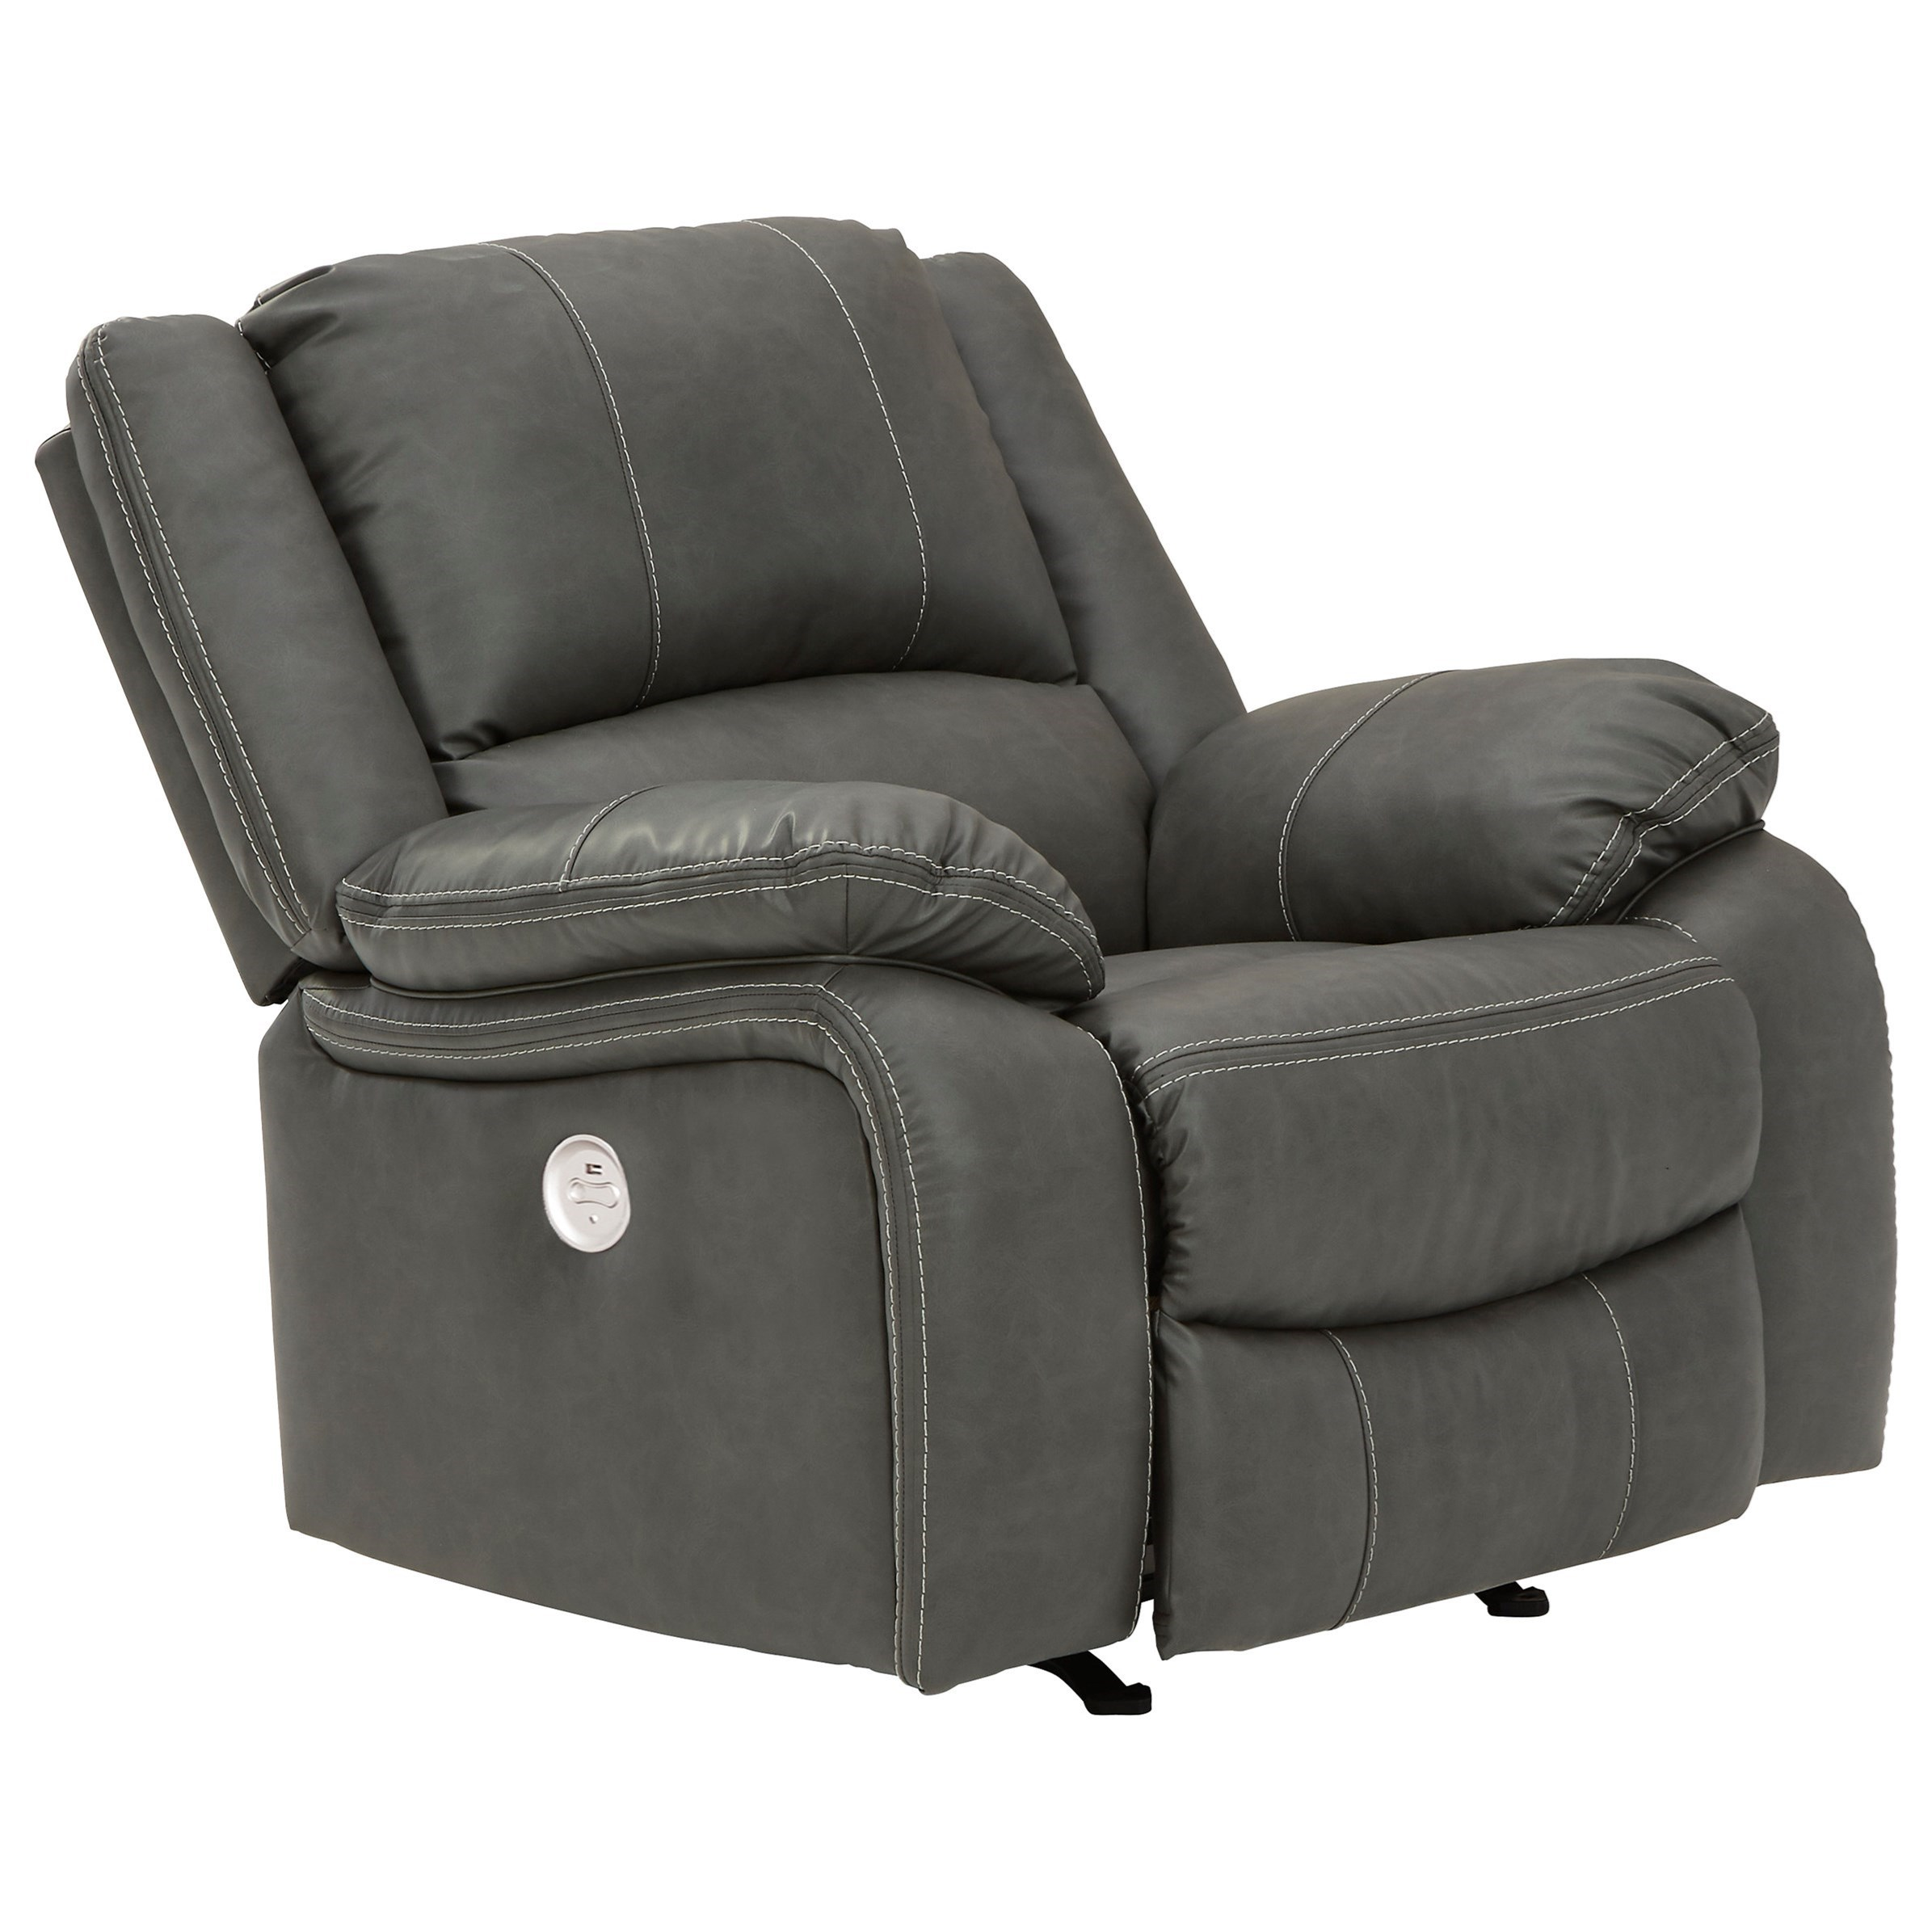 Calderwell Power Rocker Recliner by Signature Design by Ashley at Northeast Factory Direct